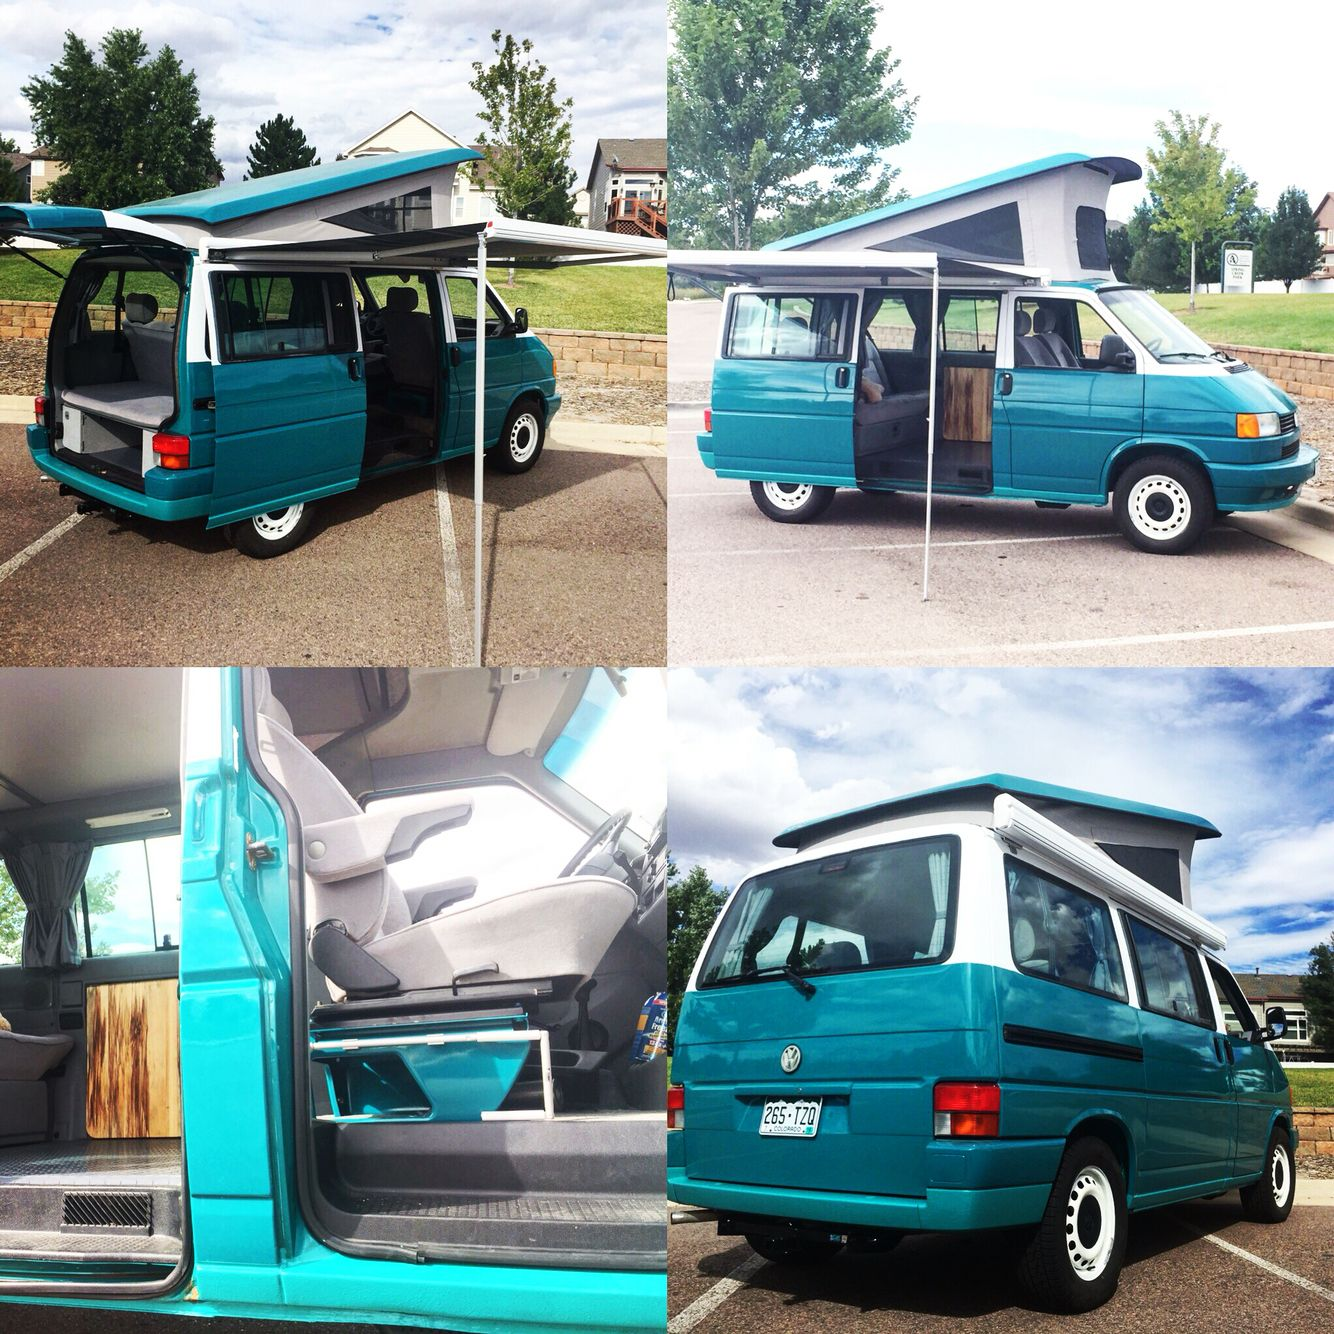 vw t4 eurovan restored and customized by cavevan eurovan camper bus interior volkswagen. Black Bedroom Furniture Sets. Home Design Ideas